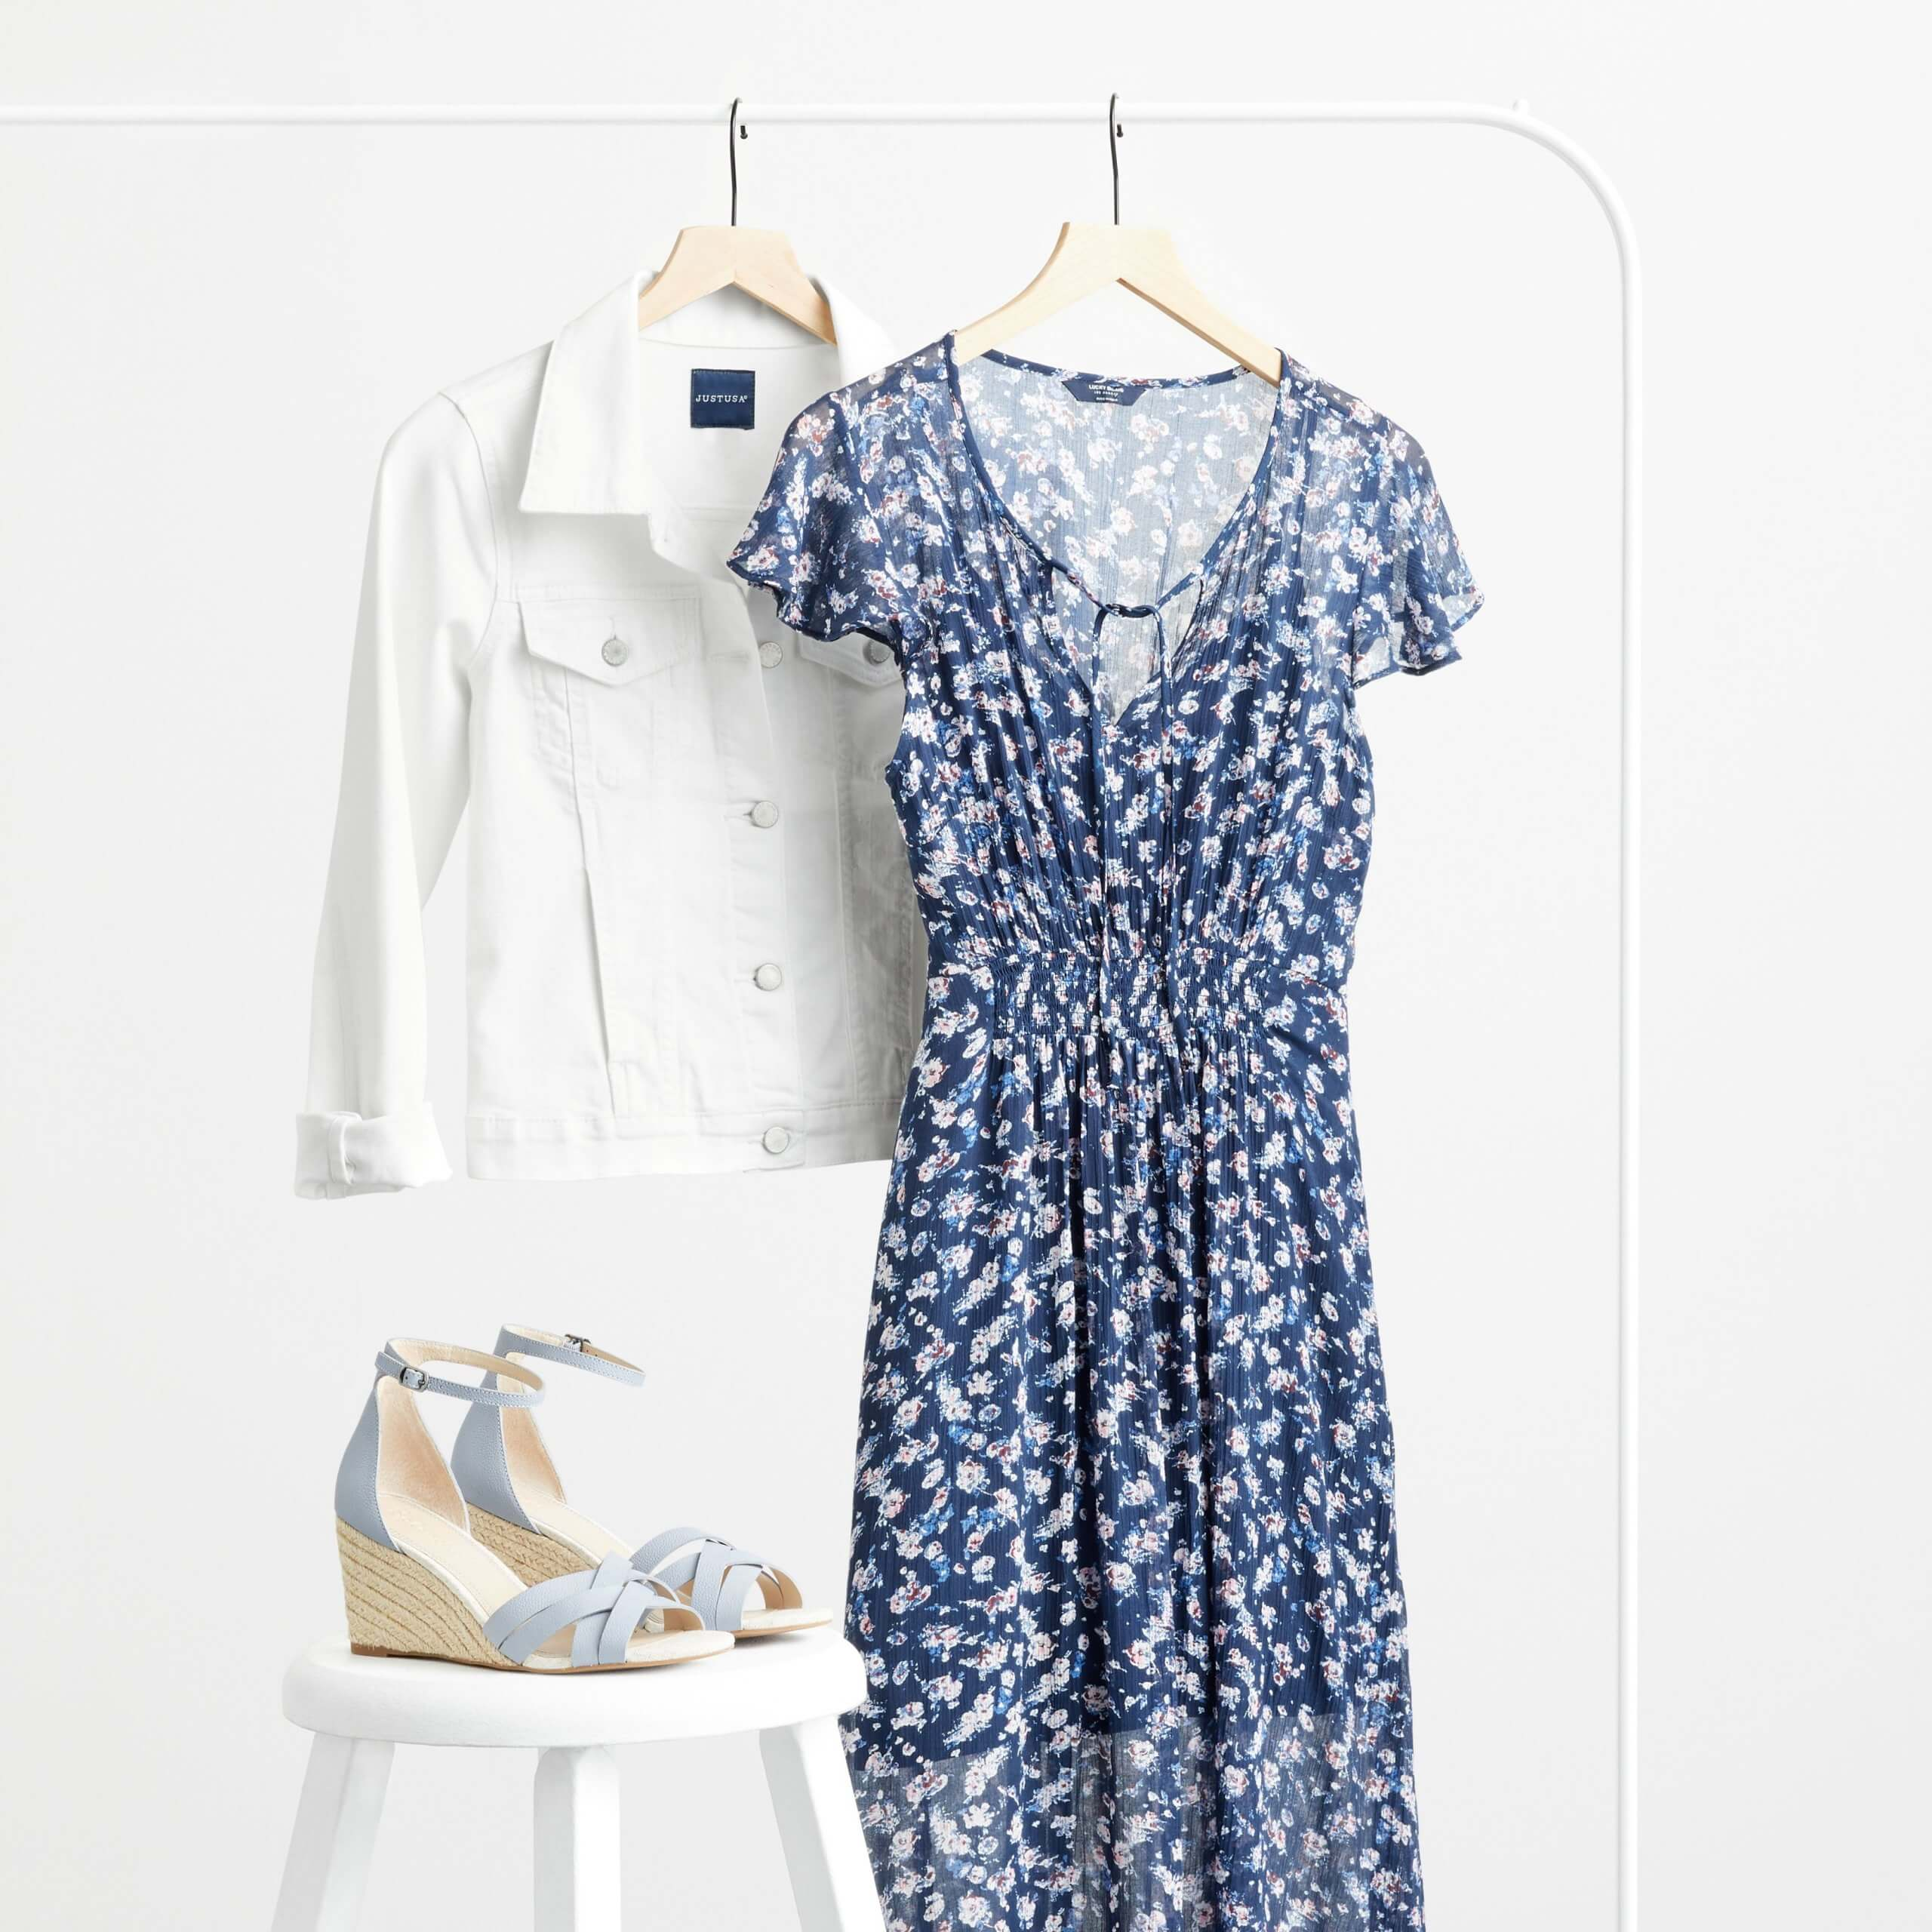 Stitch Fix Women's rack image featuring white denim jacket and blue and white printed midi dress on hangers on white rack, next to blue wedges on a white stool.